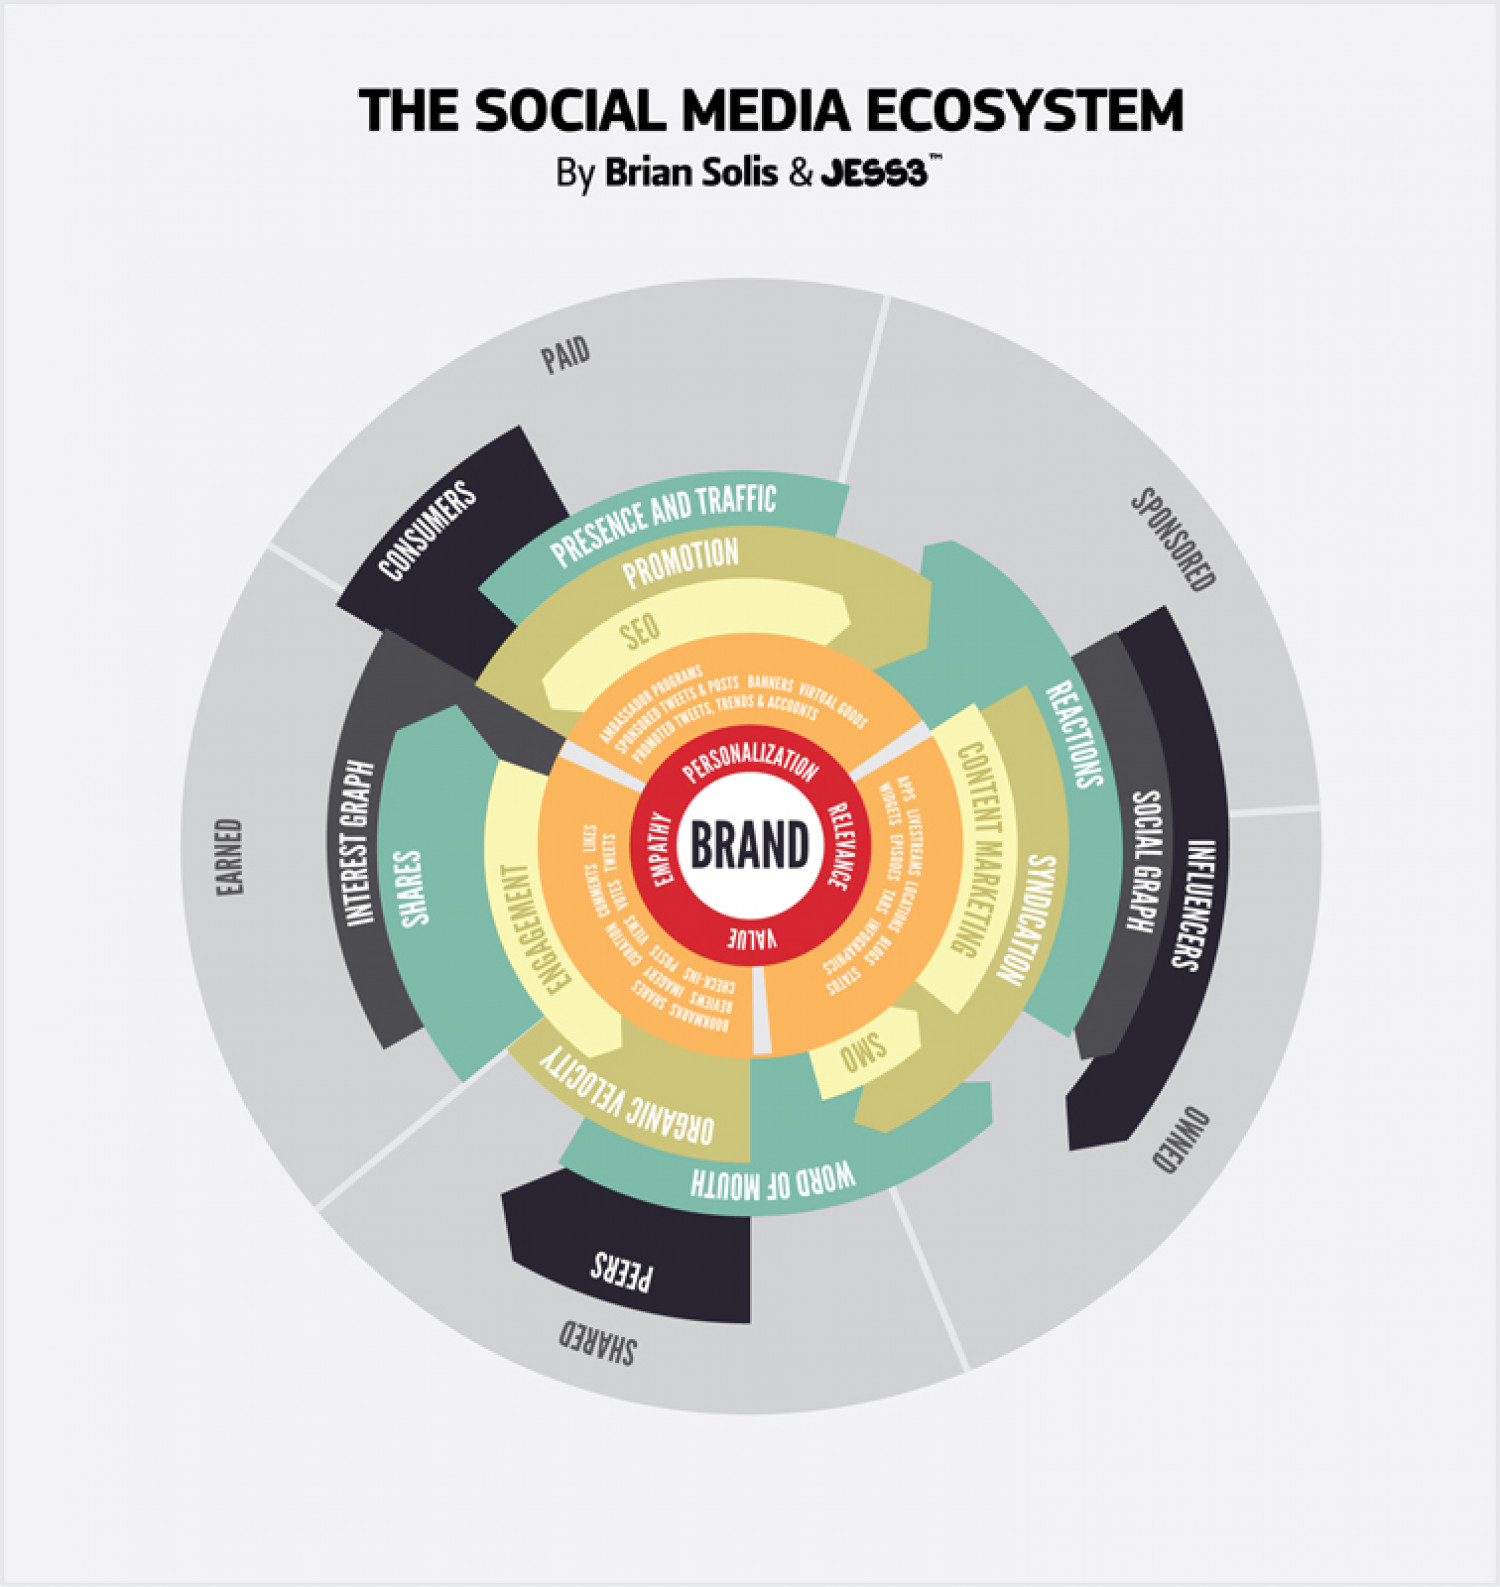 The Social Media Ecosystem Infographic